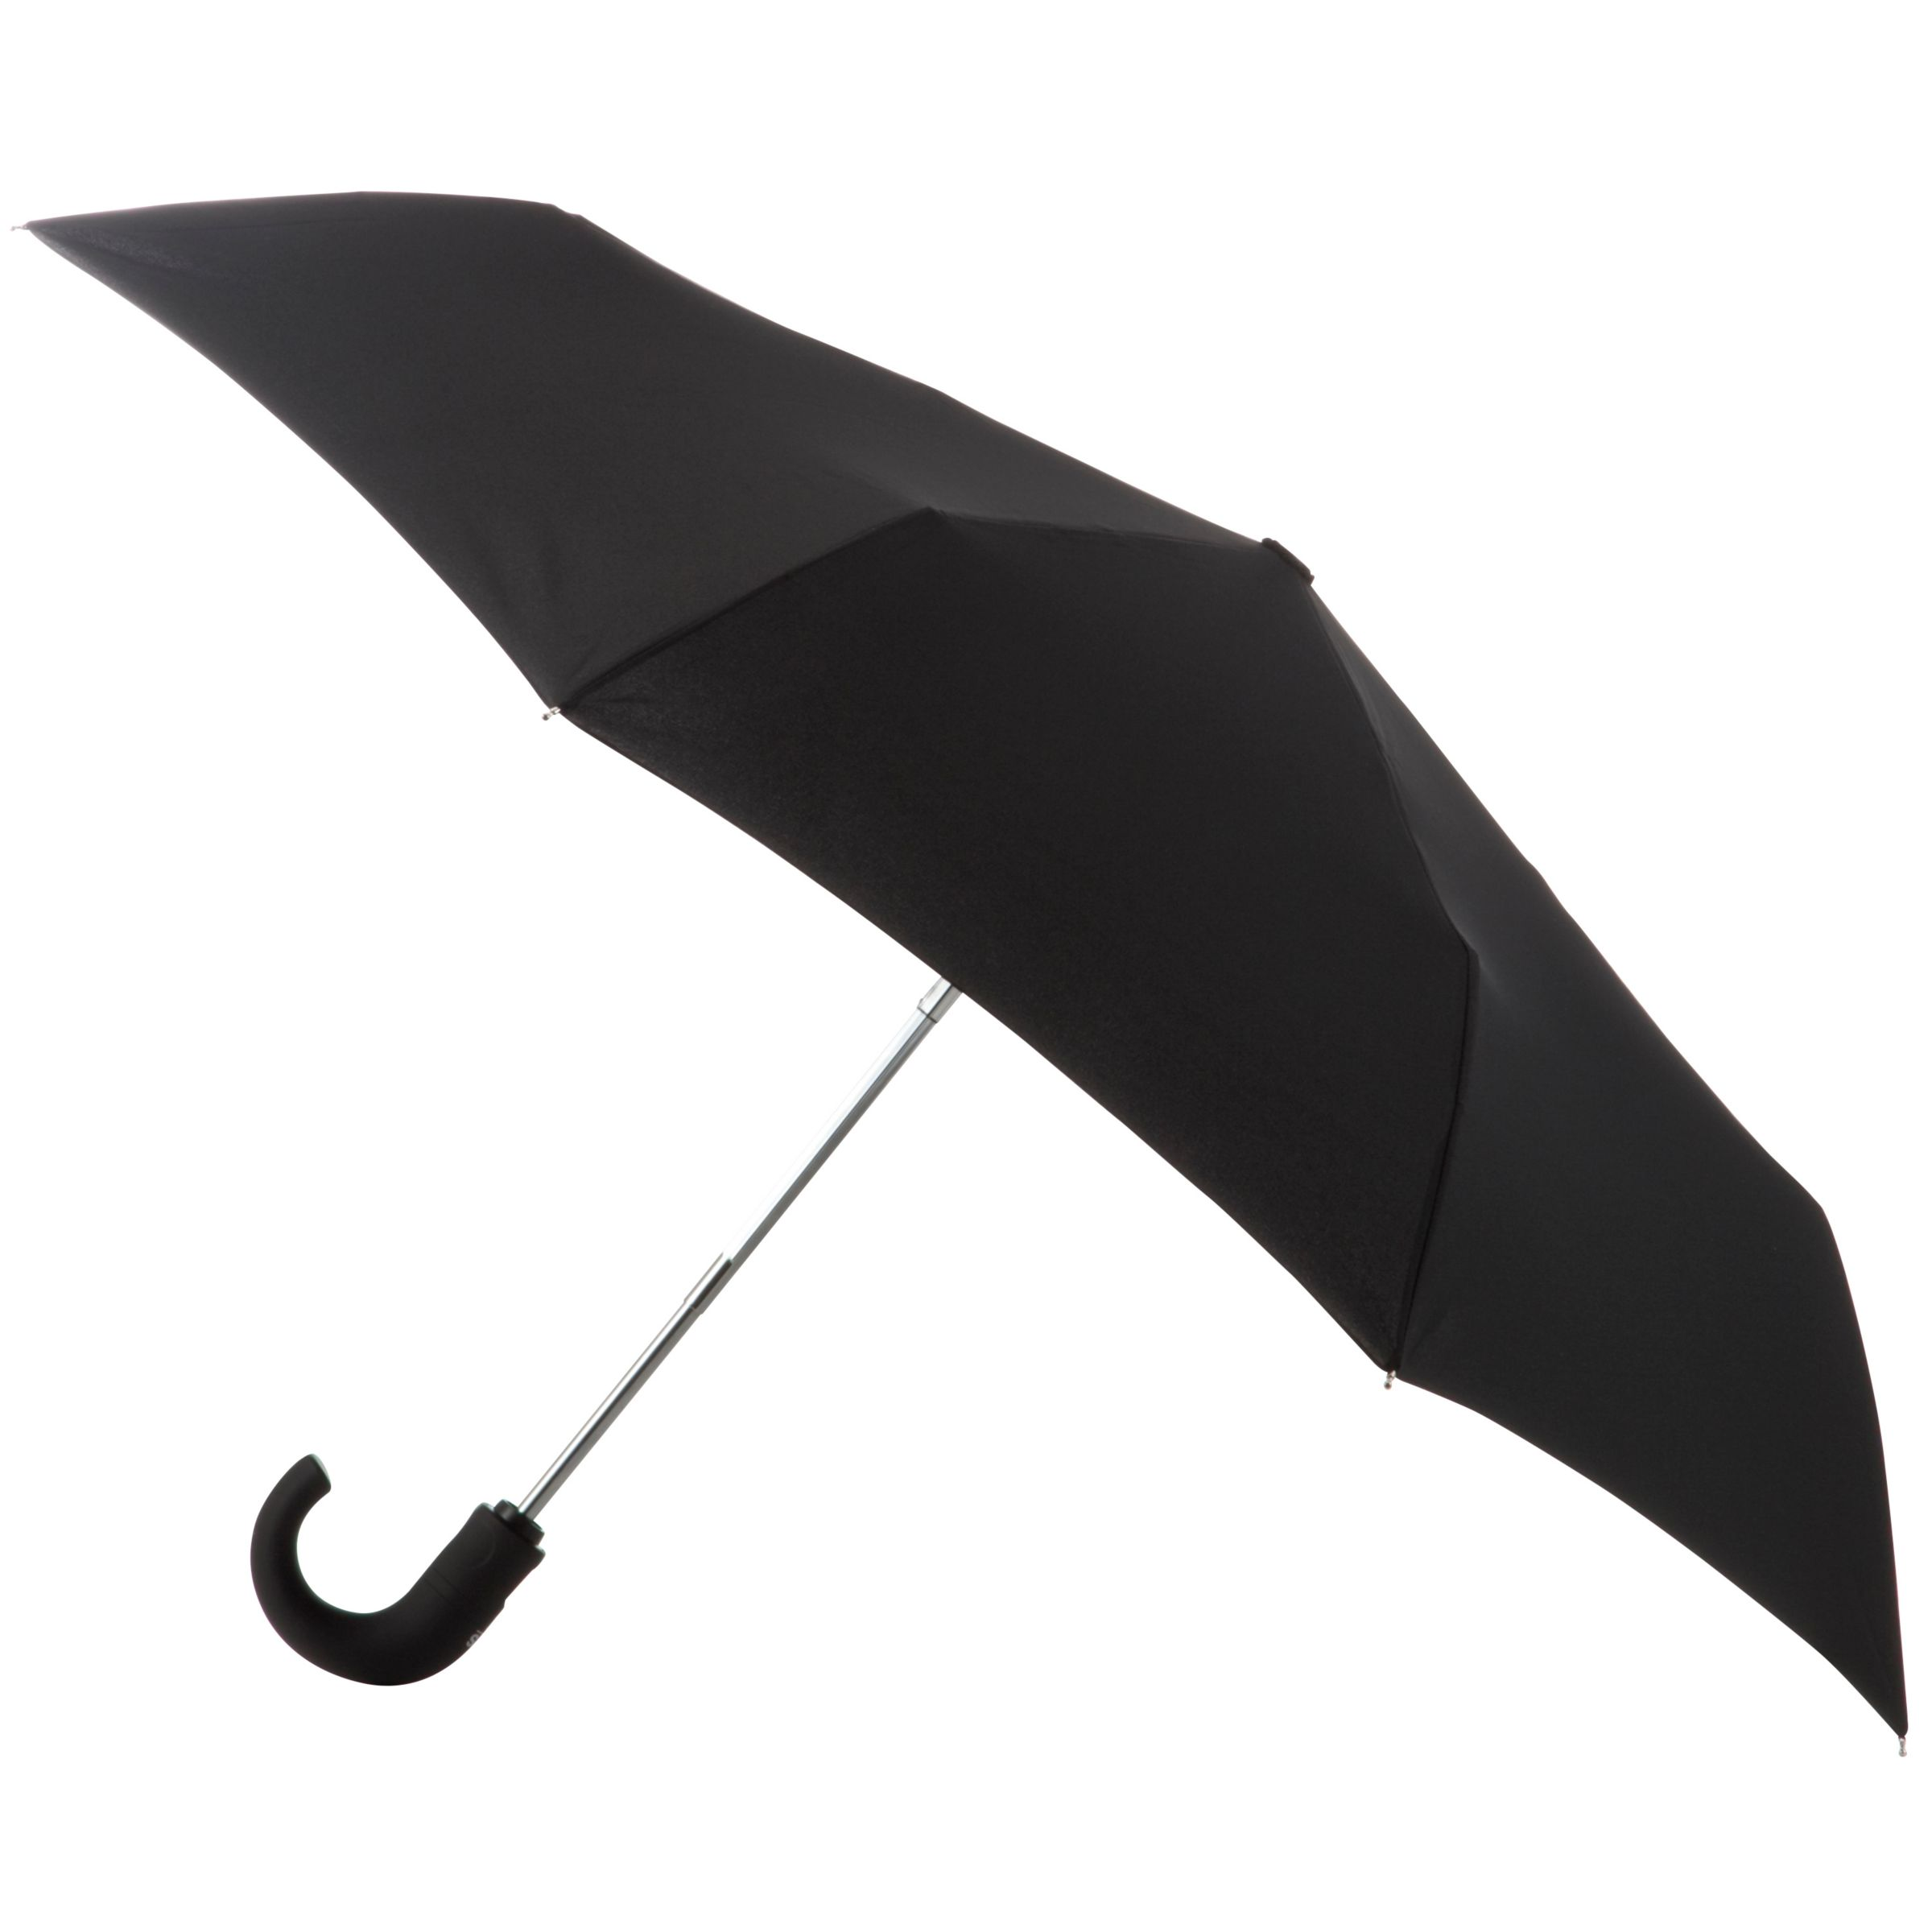 Totes totes Wonderlight Auto Open/Close Crook Umbrella, Black